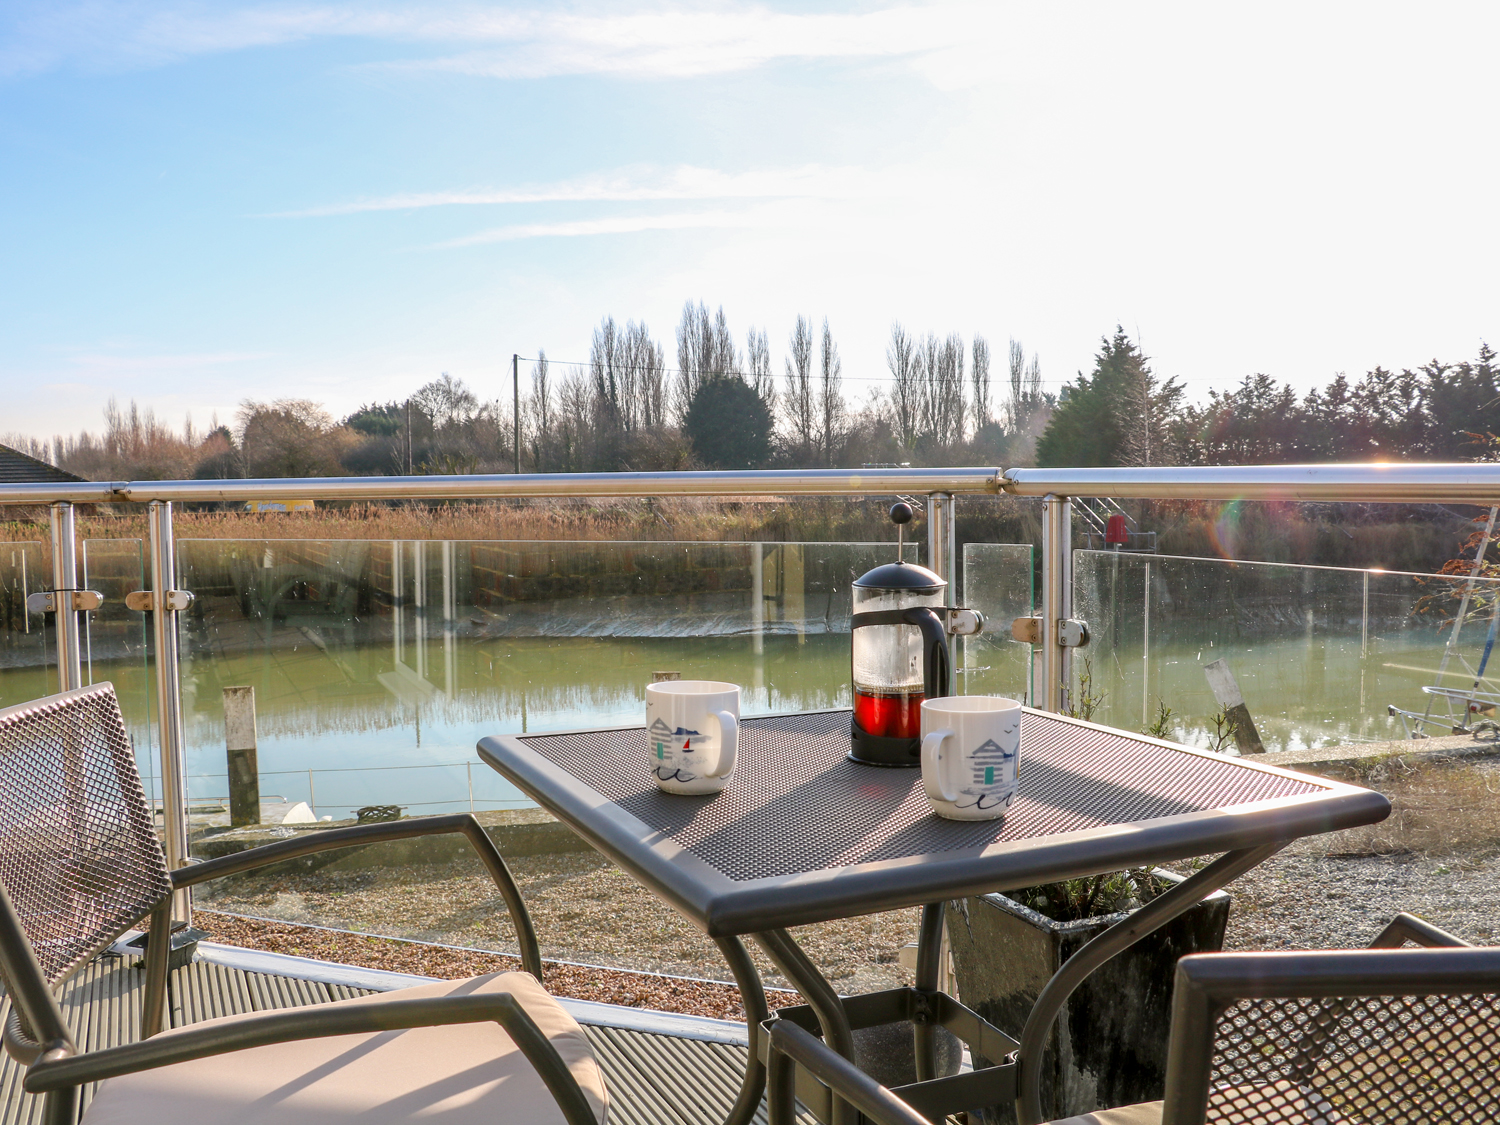 17 The Boathouse, East Sussex